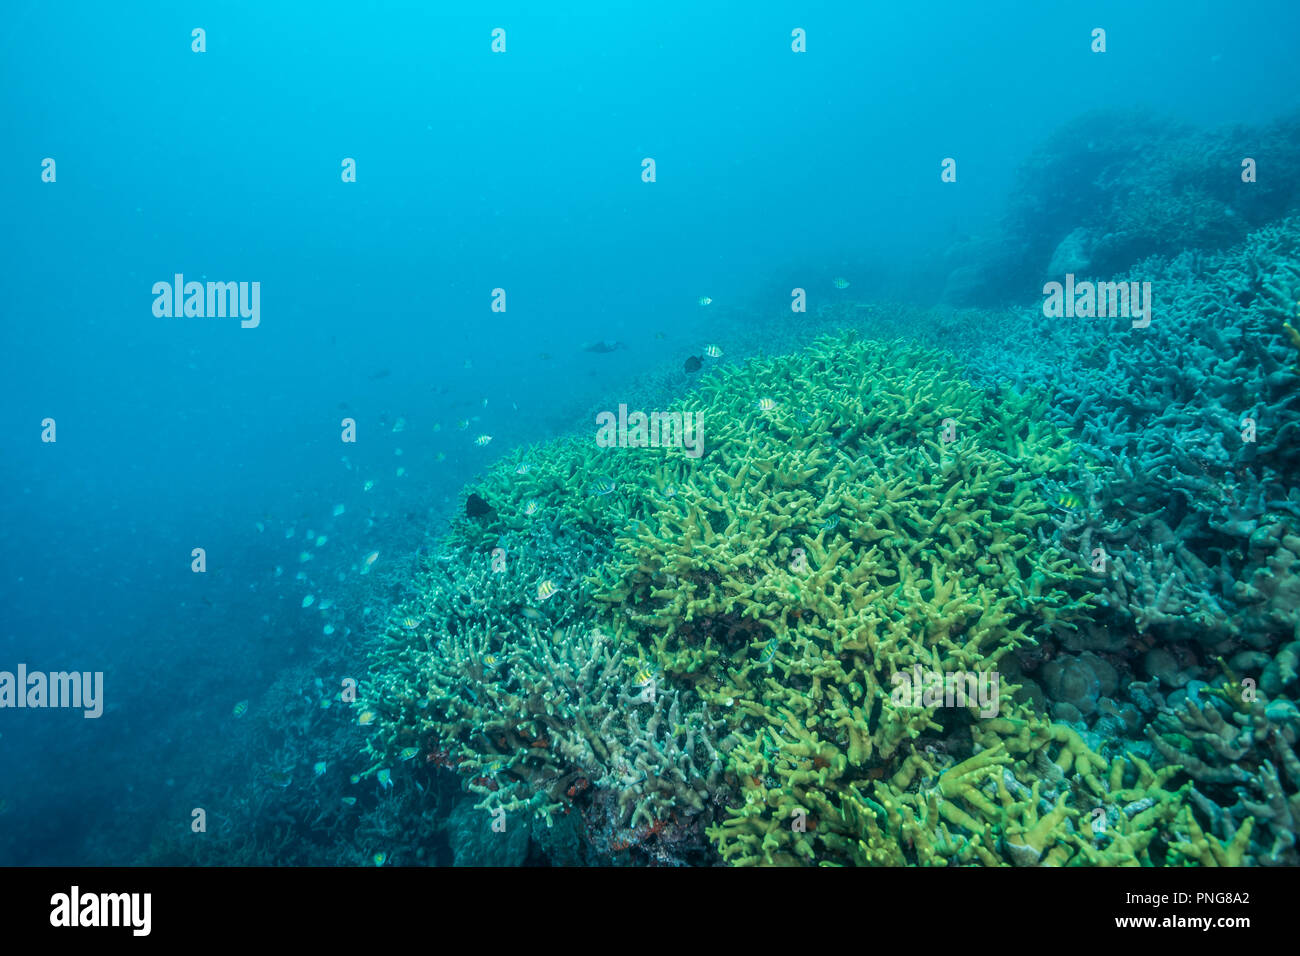 Colonies of corals spreading on the shallow bottom of the ocean. Yap Island Federated States of Micronesia - Stock Image